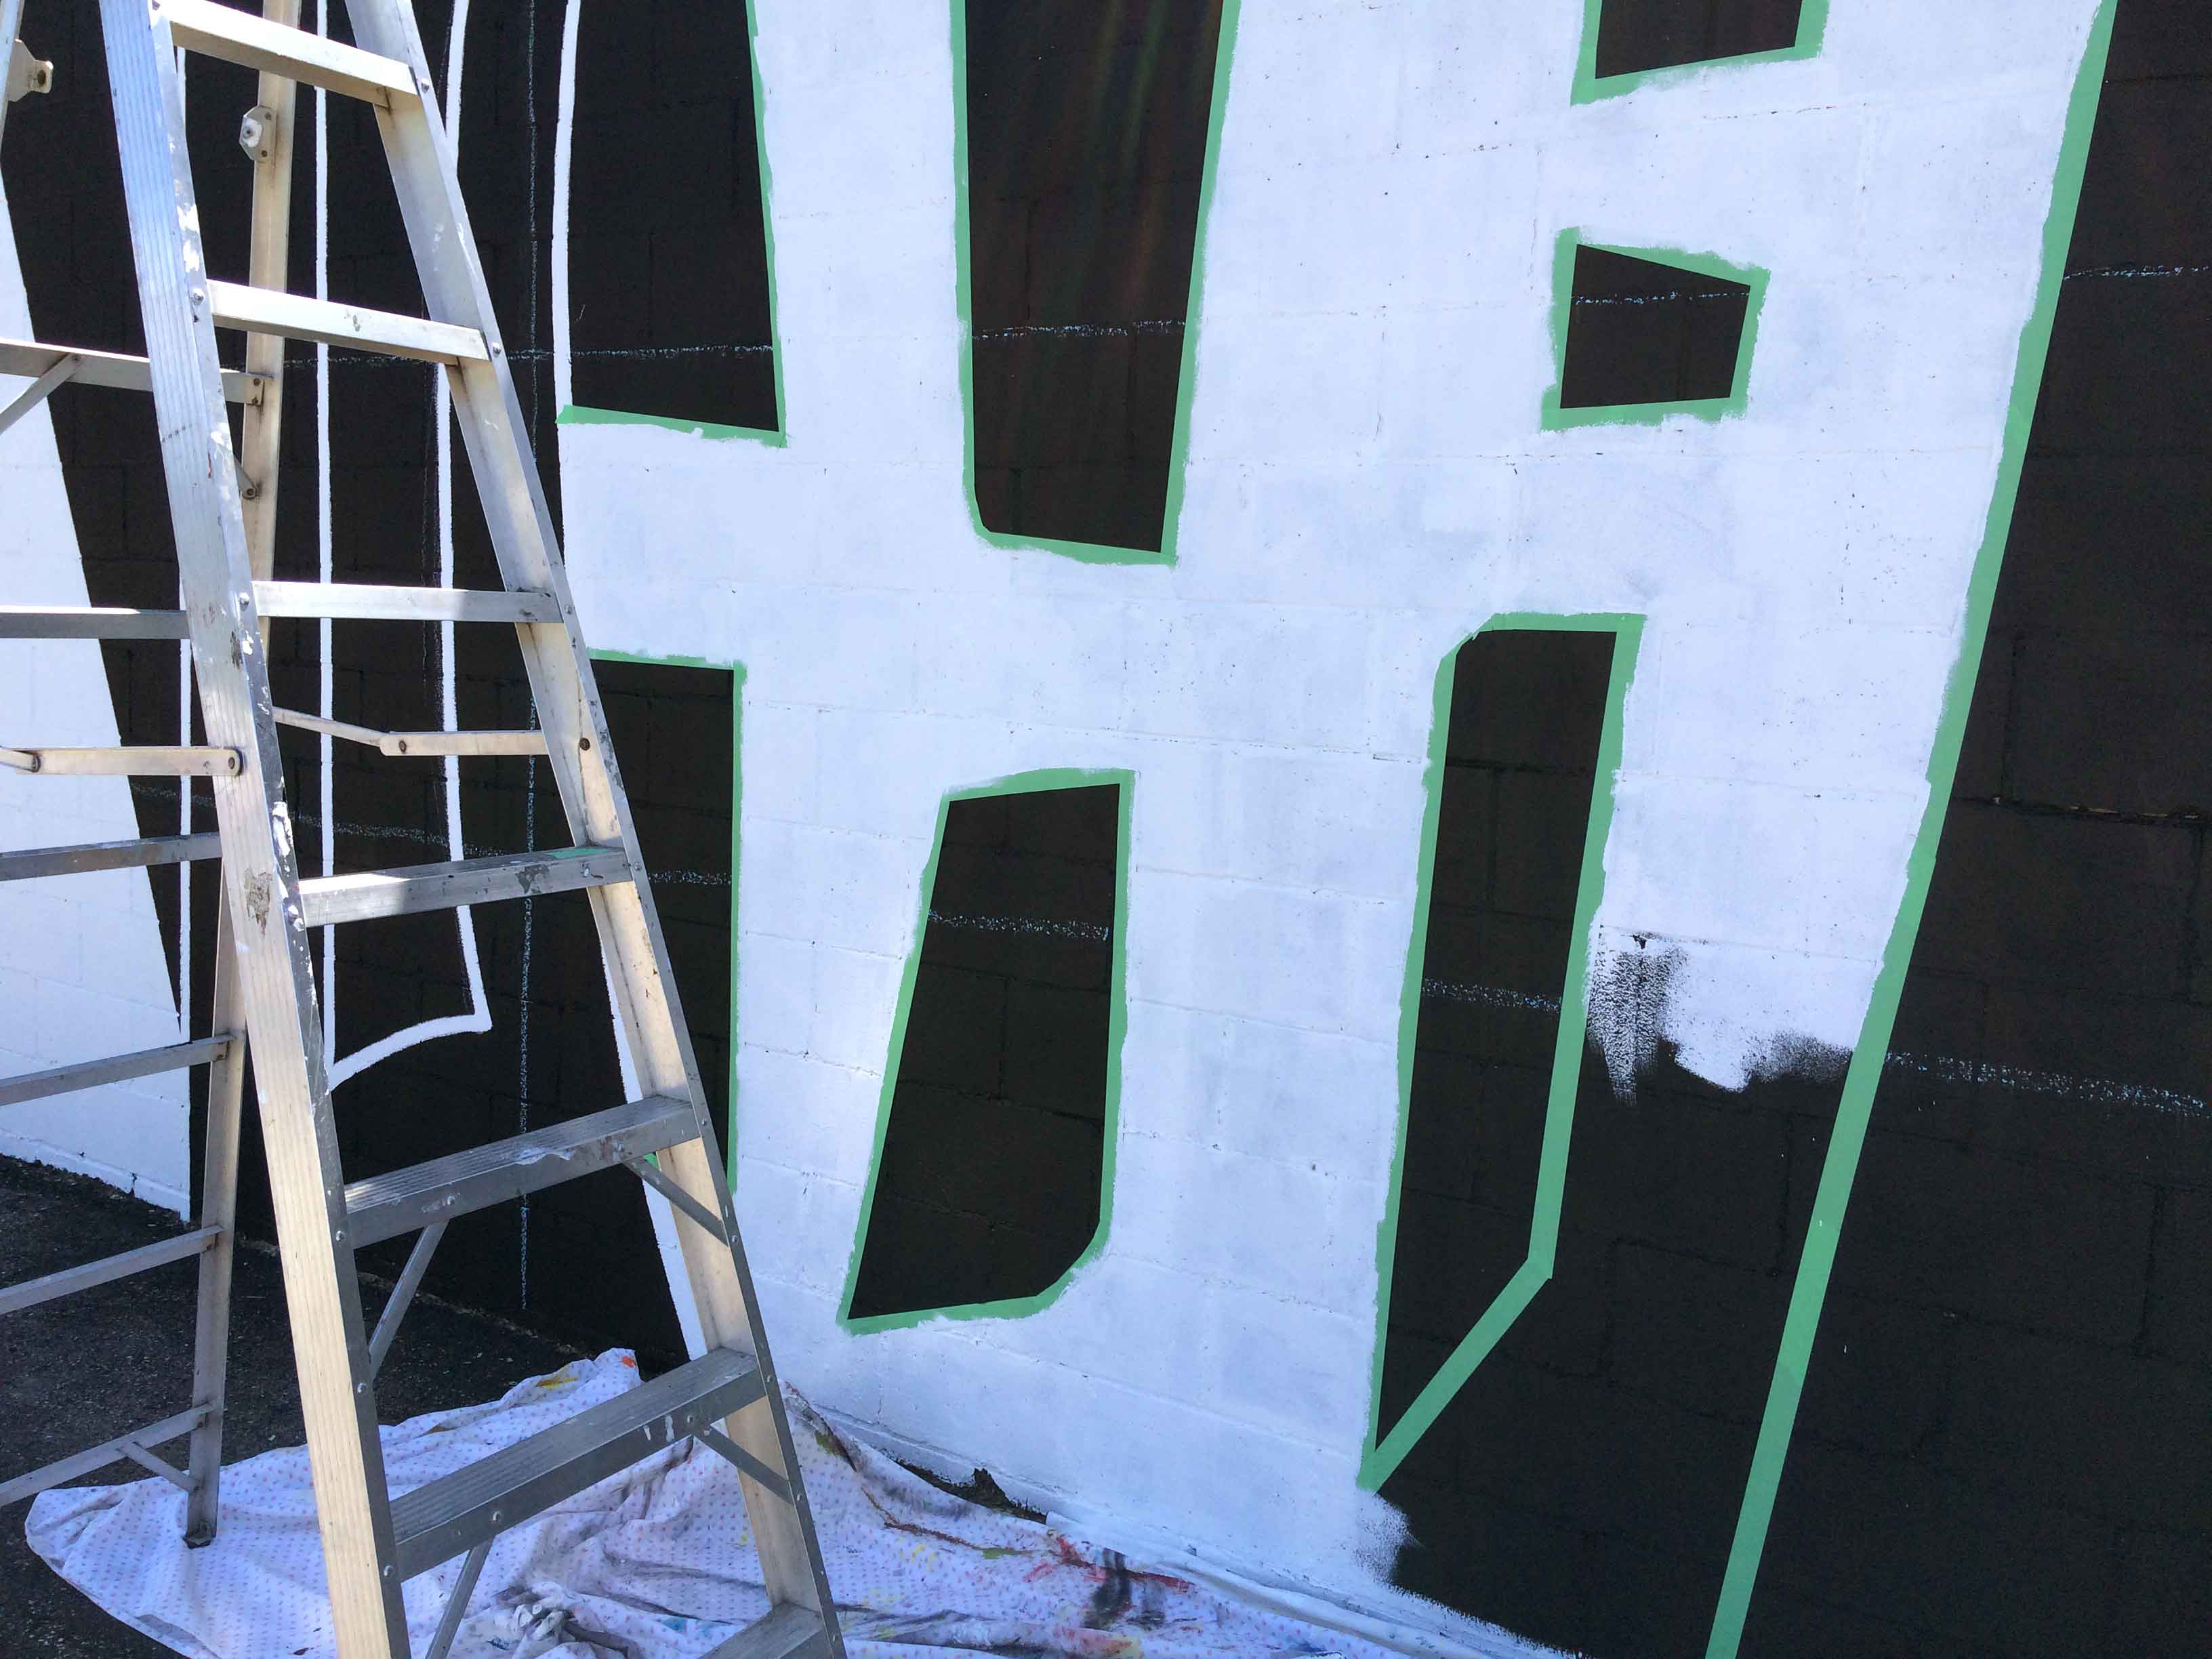 painting-large-white-wall-mural-on-build